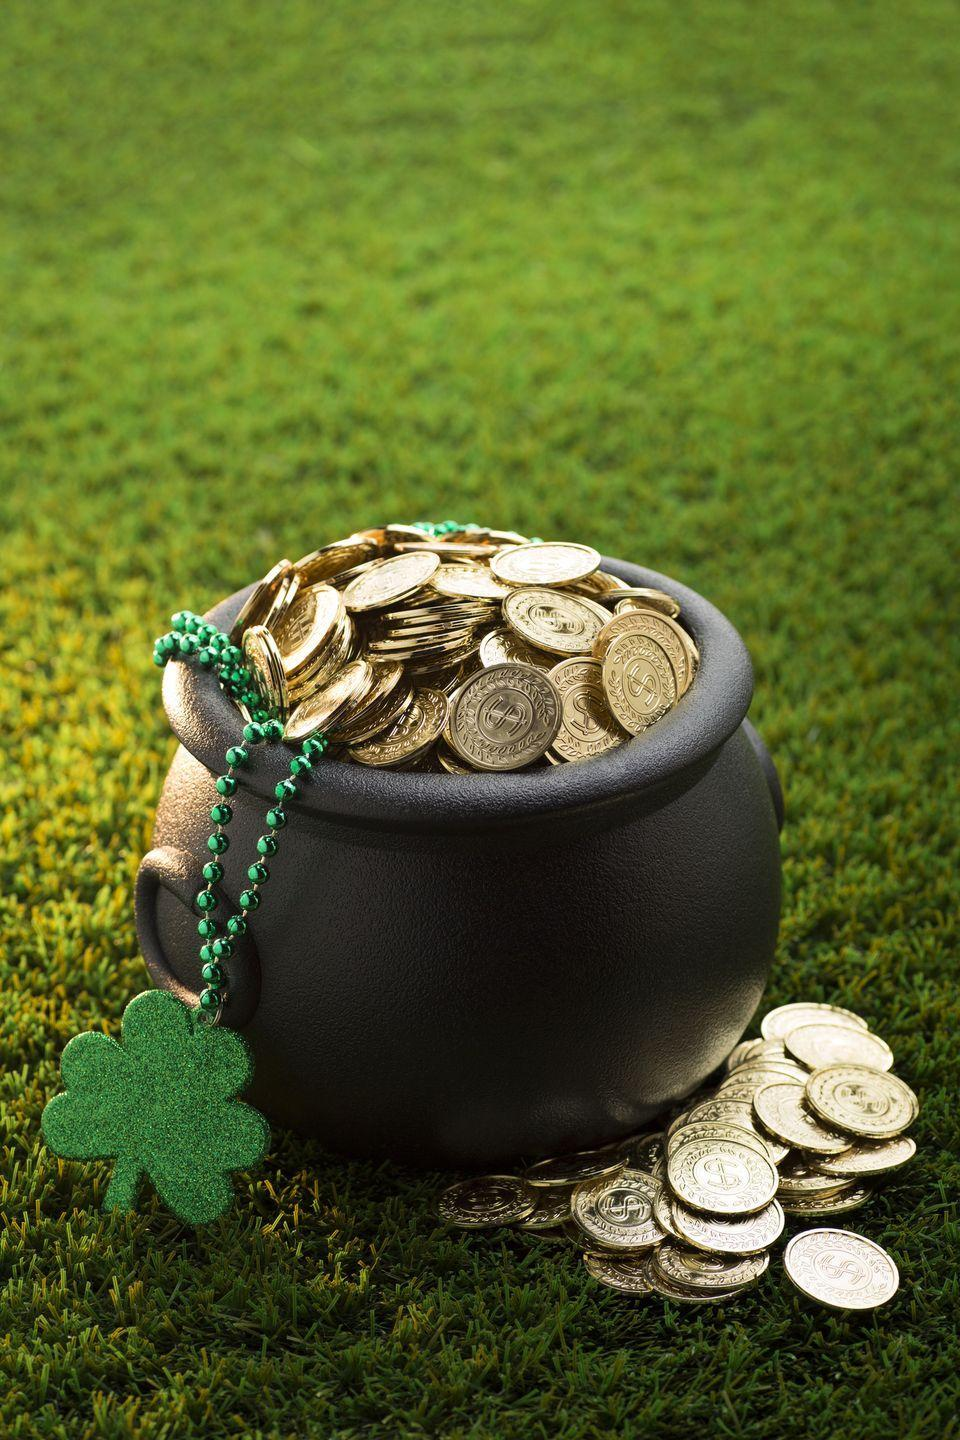 """<p>This game chooses one """"leprechaun"""" to try and figure out who in the circle is hiding the gold coin.</p><p><strong>Get the tutorial at <a href=""""https://happyhomefairy.com/five-fun-games-for-st-patricks-day/"""" rel=""""nofollow noopener"""" target=""""_blank"""" data-ylk=""""slk:Happy Home Fairy"""" class=""""link rapid-noclick-resp"""">Happy Home Fairy</a>.</strong></p><p><strong><a class=""""link rapid-noclick-resp"""" href=""""https://www.amazon.com/Chuangdi-Lucky-Plastic-Patricks-Shamrock/dp/B07MV4GNN9/?tag=syn-yahoo-20&ascsubtag=%5Bartid%7C10050.g.26234489%5Bsrc%7Cyahoo-us"""" rel=""""nofollow noopener"""" target=""""_blank"""" data-ylk=""""slk:SHOP GOLD COINS"""">SHOP GOLD COINS</a><br></strong></p>"""